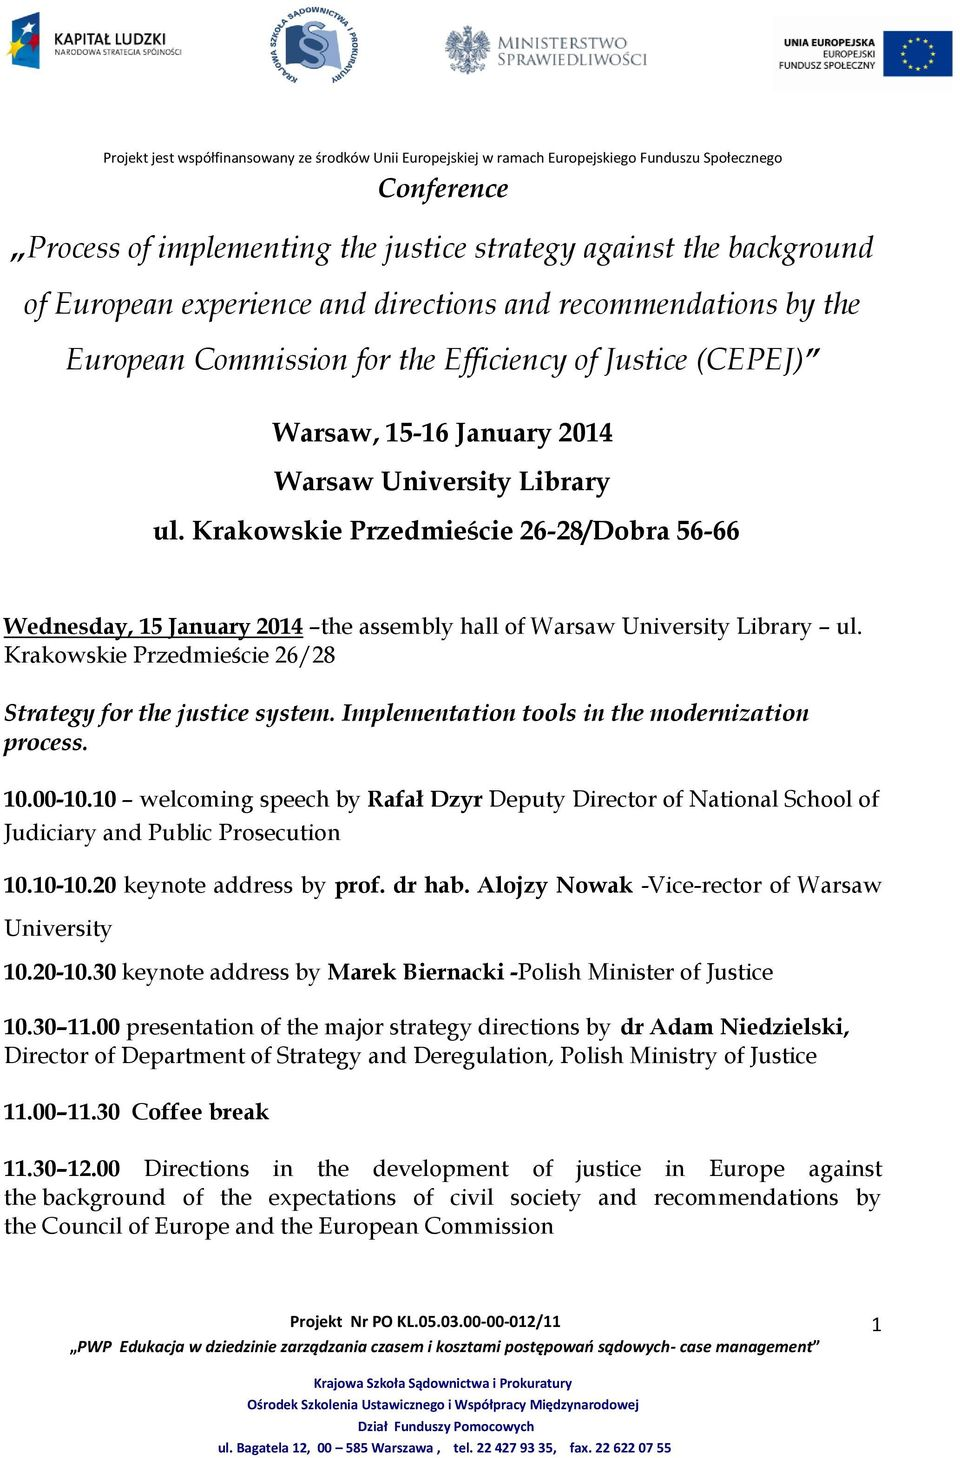 Krakowskie Przedmieście 26/28 Strategy for the justice system. Implementation tools in the modernization process. 10.00-10.